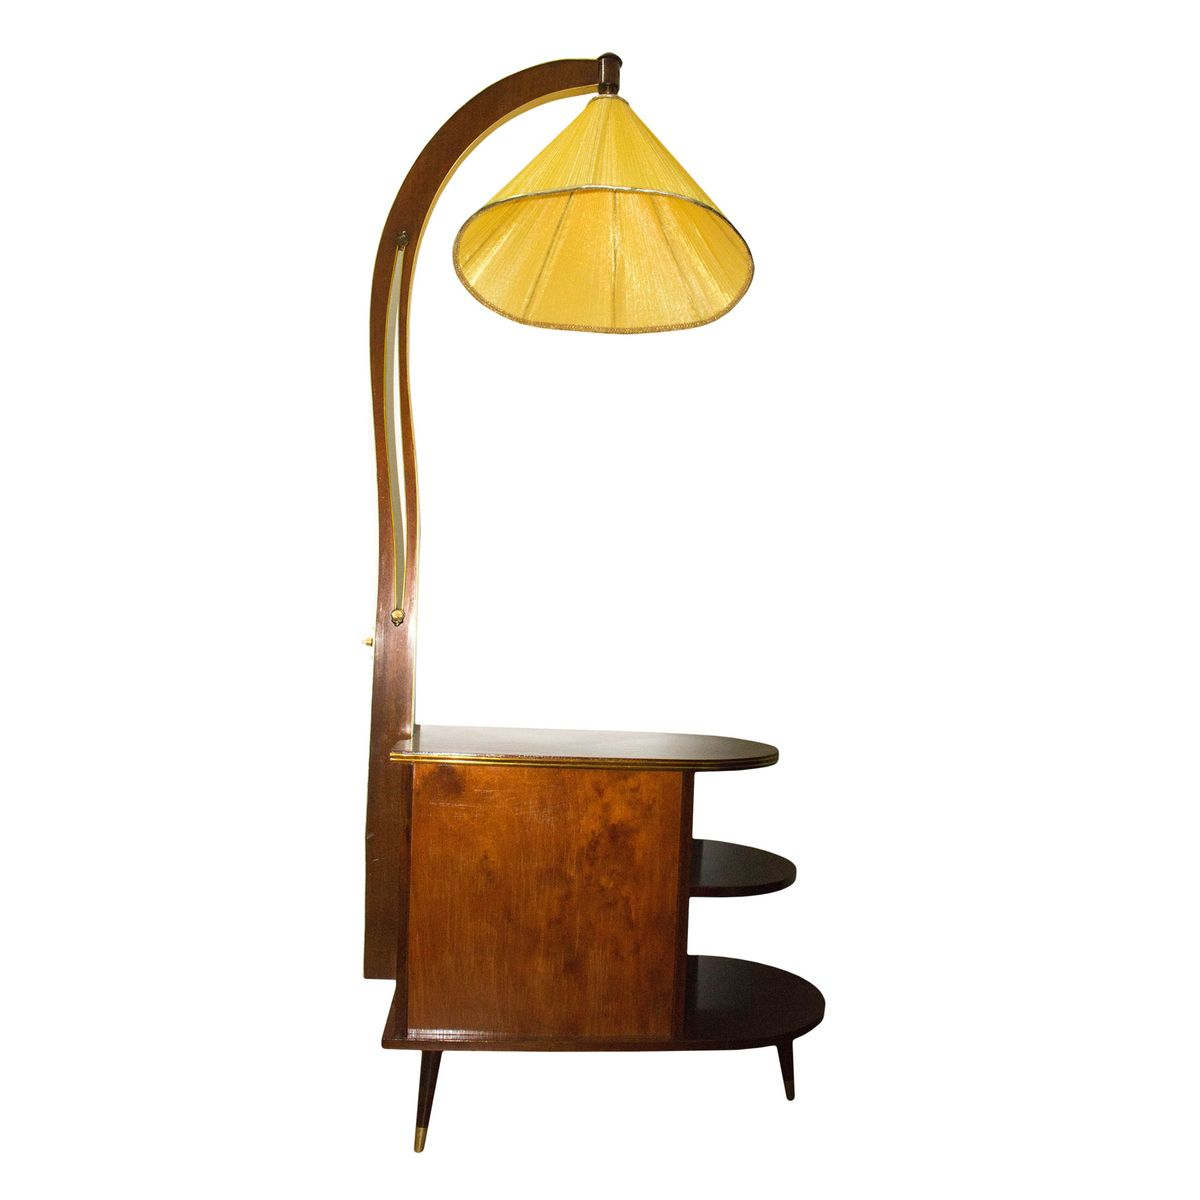 Vintage Art Deco Minibar with Lamp for sale at Pamono